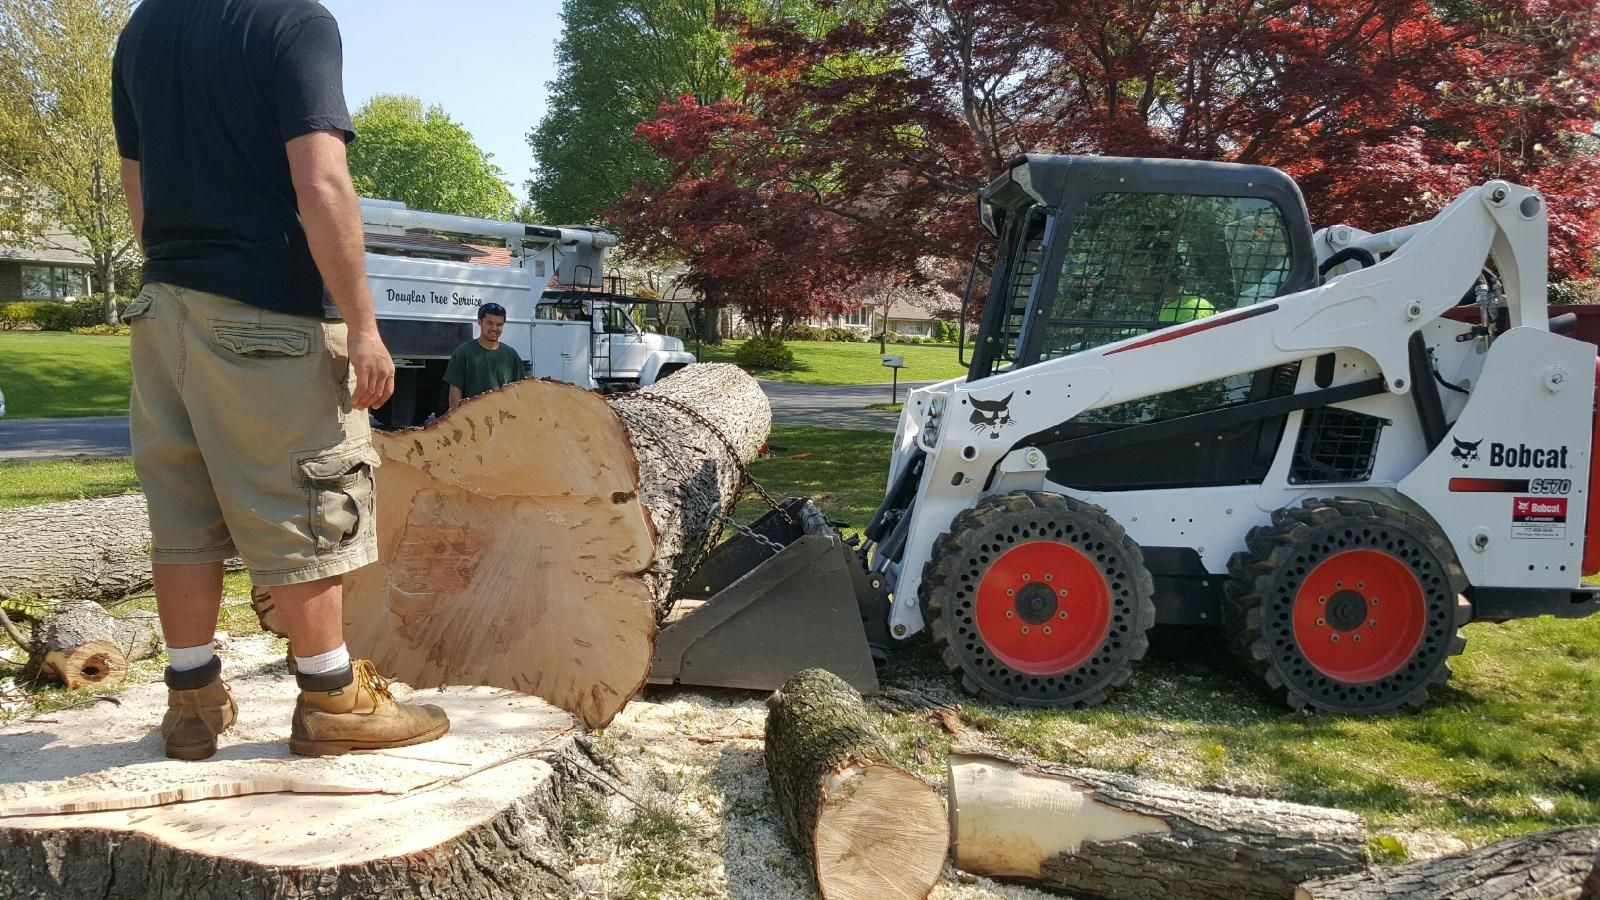 New Deal-Lubbock Tree Trimming and Stump Grinding Services-We Offer Tree Trimming Services, Tree Removal, Tree Pruning, Tree Cutting, Residential and Commercial Tree Trimming Services, Storm Damage, Emergency Tree Removal, Land Clearing, Tree Companies, Tree Care Service, Stump Grinding, and we're the Best Tree Trimming Company Near You Guaranteed!